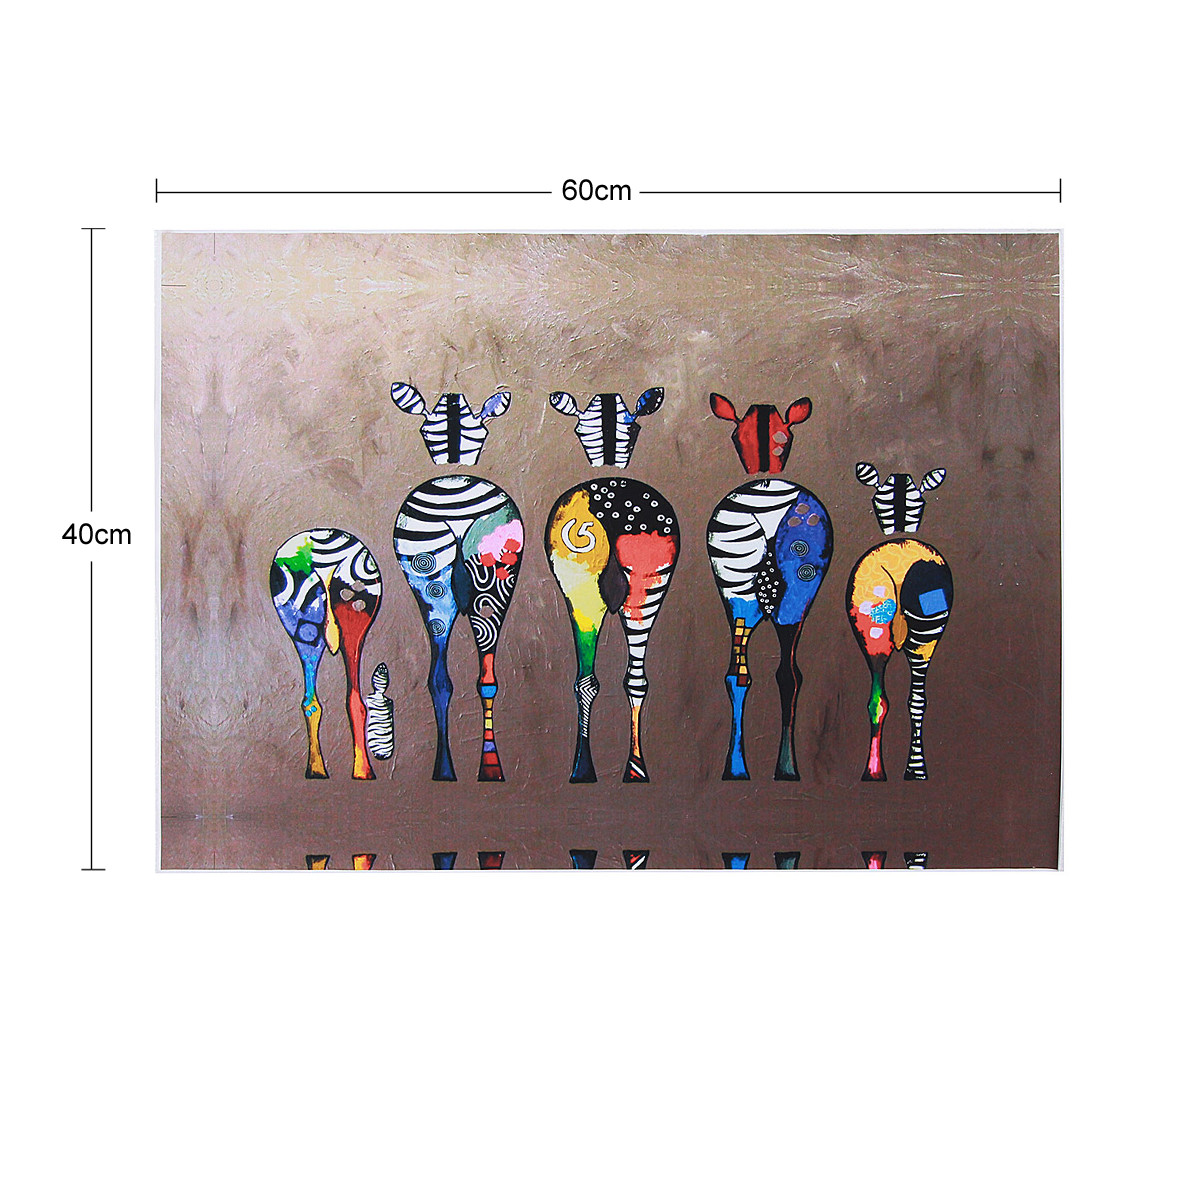 Hd Canvas Print Home Decor Wall Art Painting : Hd unframed canvas print zebra home decor wall art poster